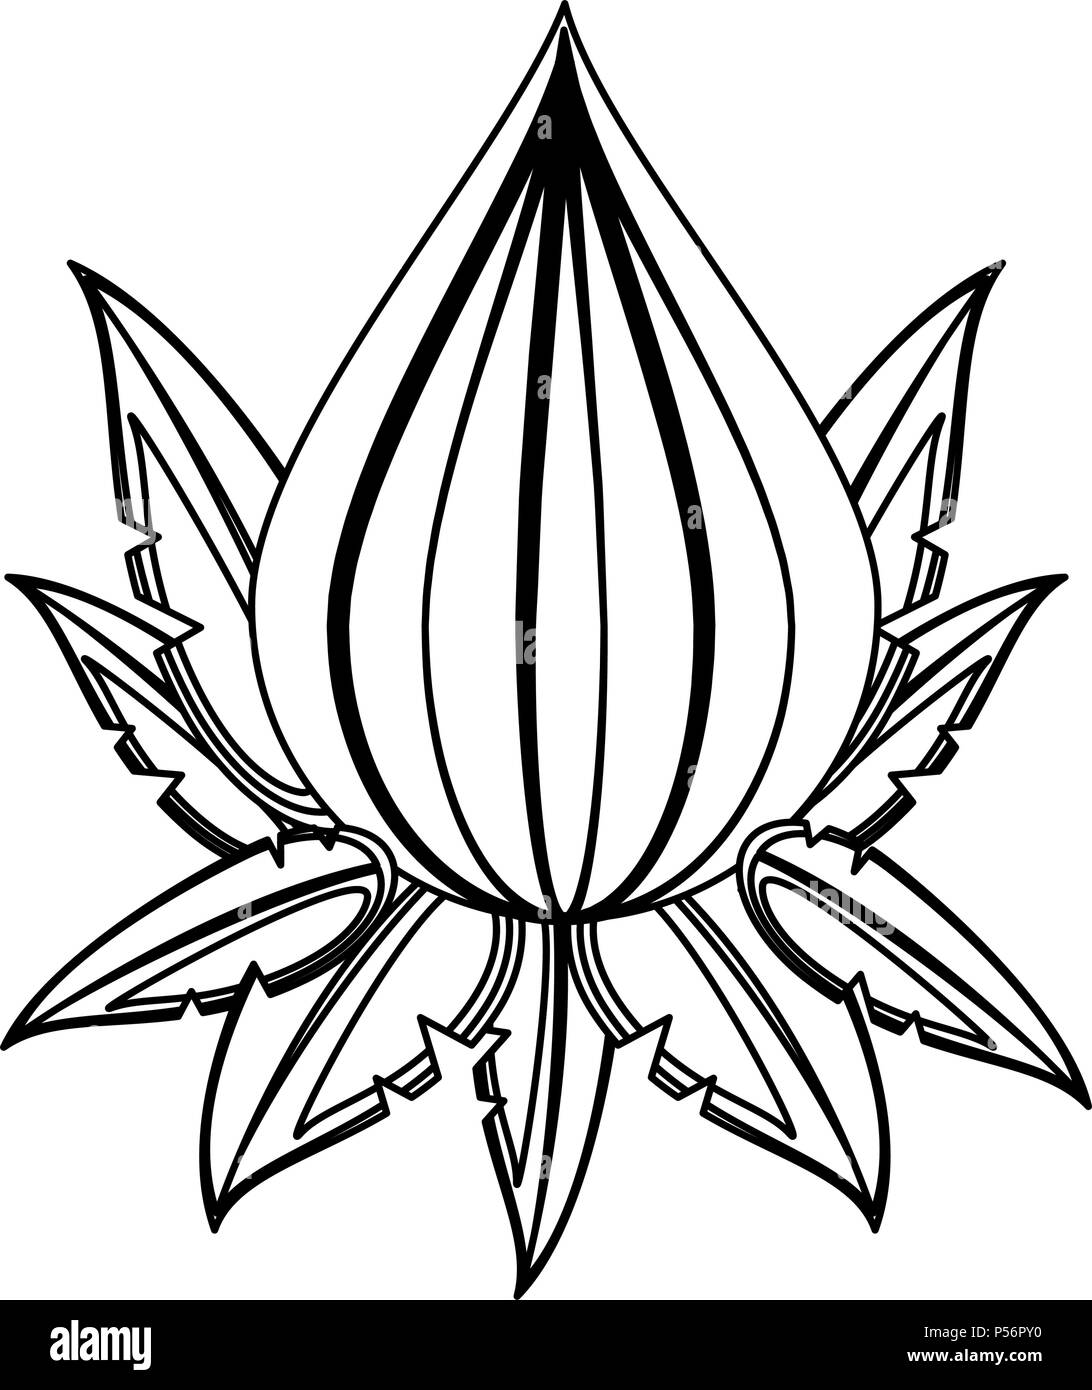 Lotus flower as symbol stock photos lotus flower as symbol stock lotus flower symbol in black and white stock image mightylinksfo